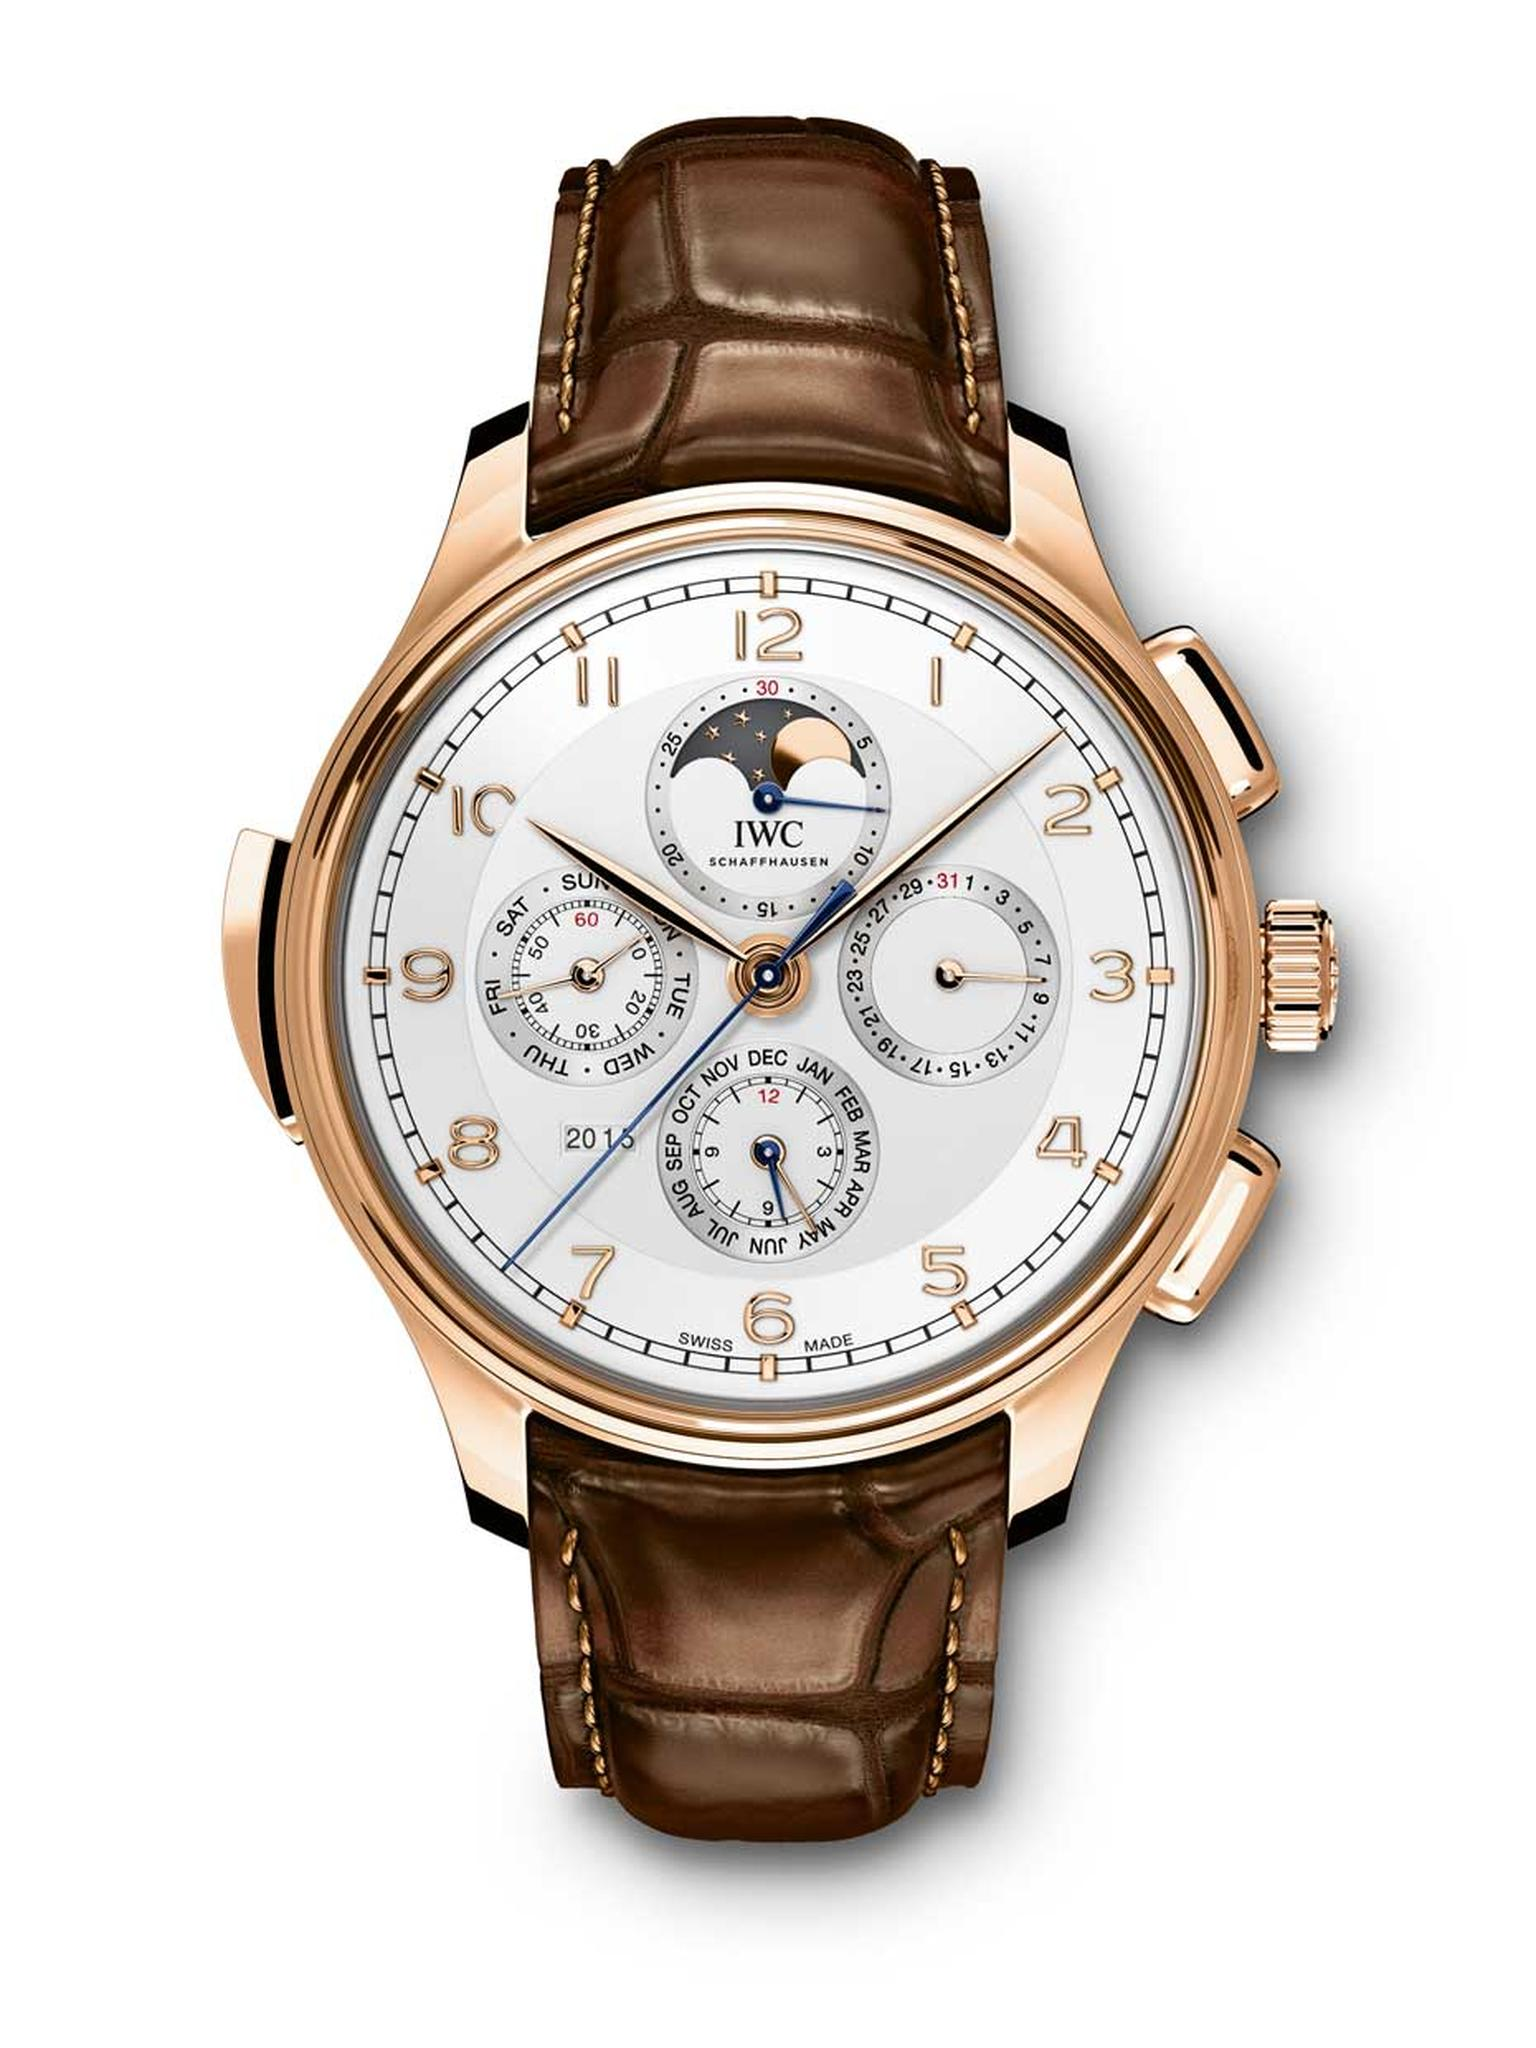 IWC Portugieser Grande Complication has a dazzling array of technical features and a total of 20 different displays and functions, including a perpetual calendar, a chronograph, a Moon-phase indicator and a minute repeater. The 45 mm rose gold model is li